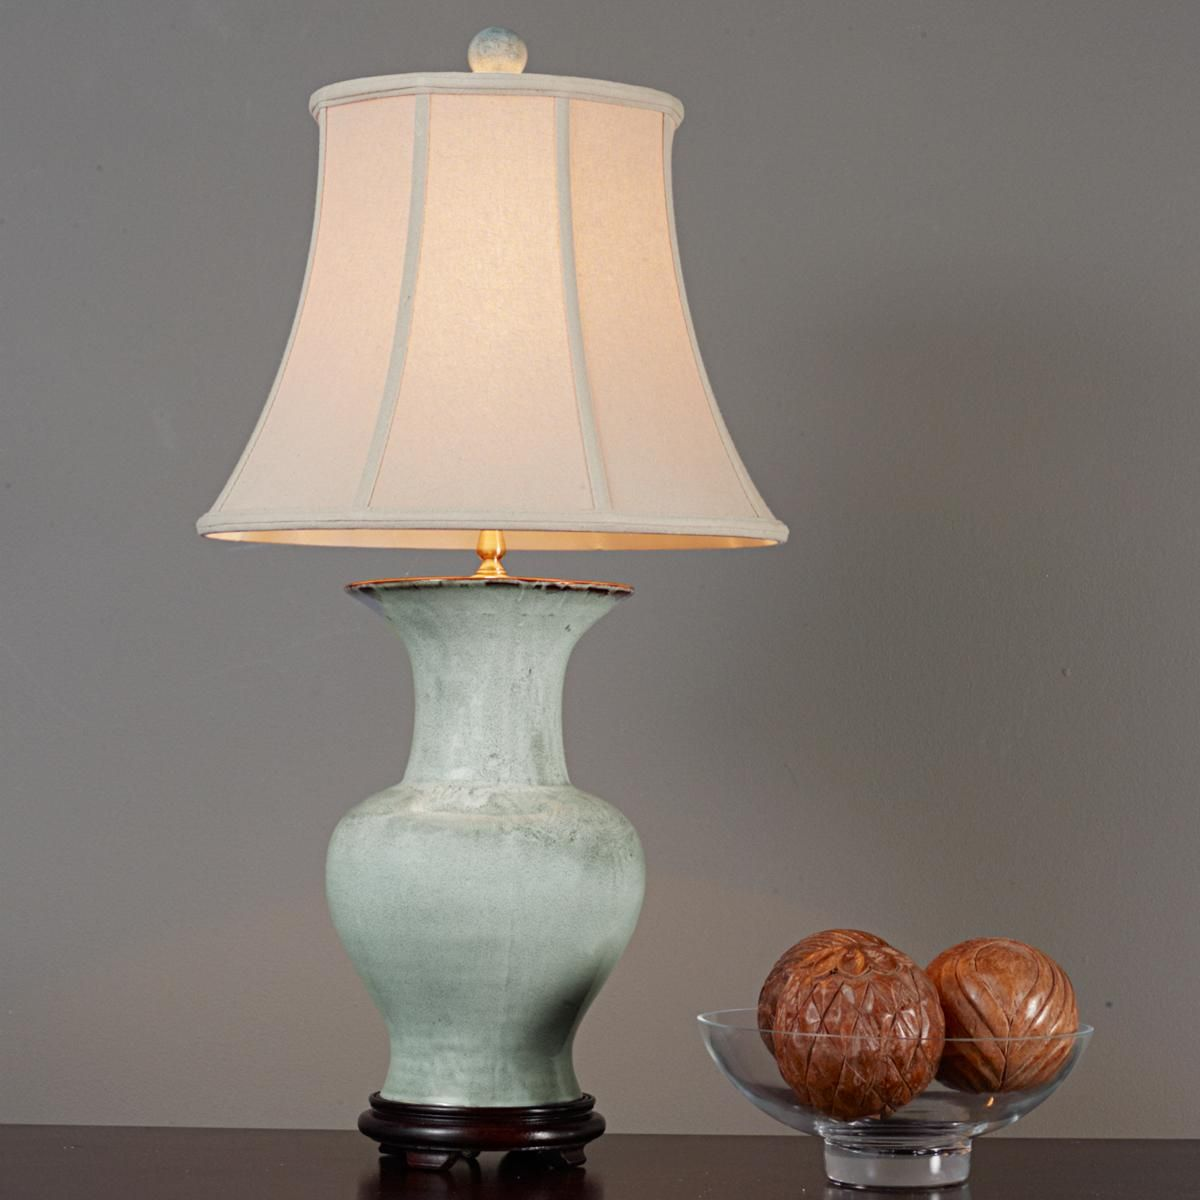 Ginger Jar Porcelain Table Lamp | For the Home | Pinterest ...